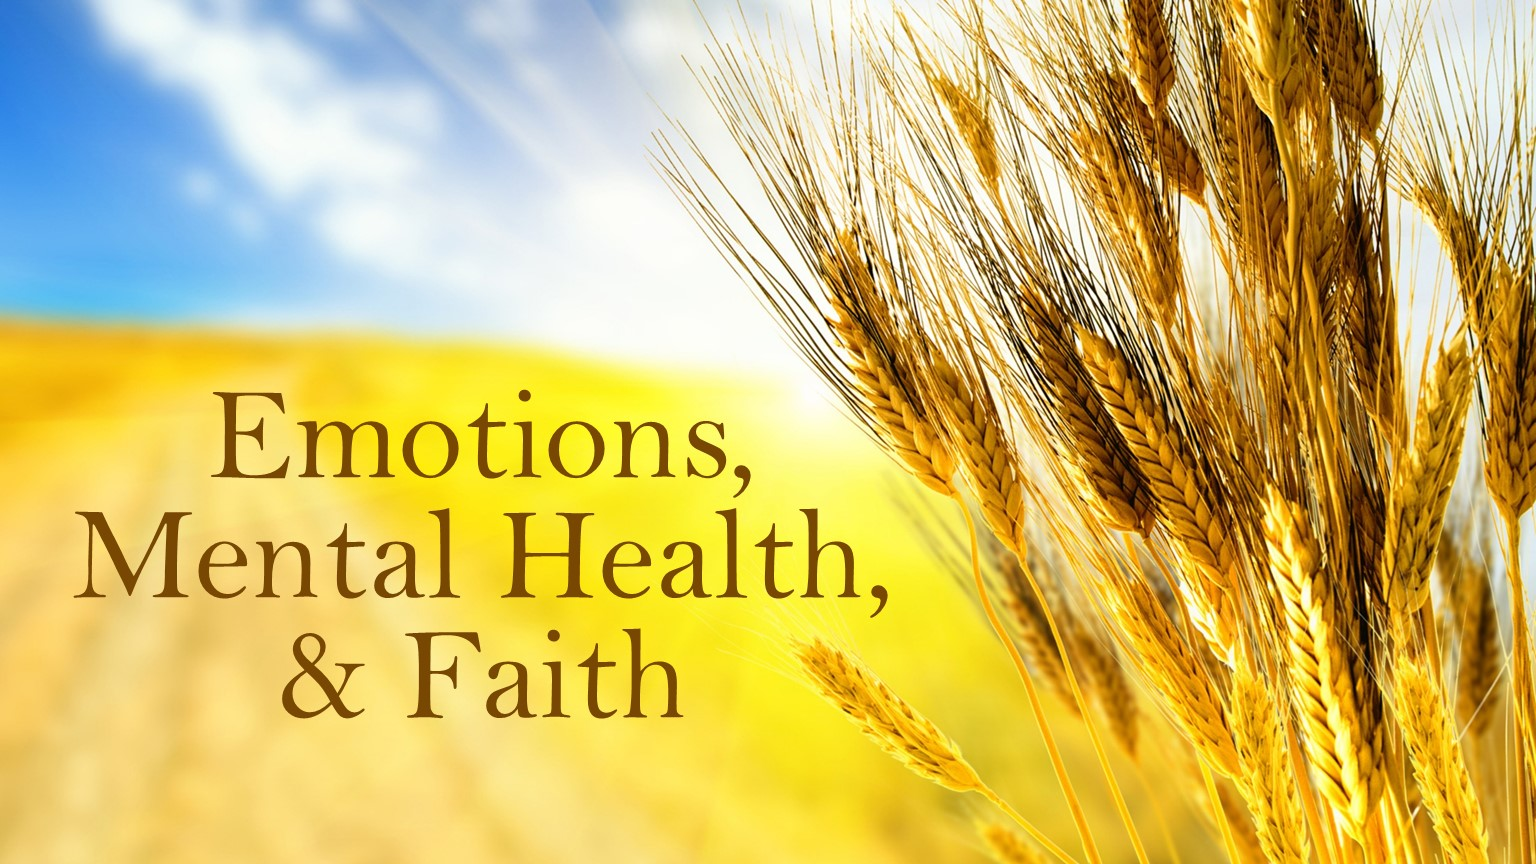 Emotions, Mental Health, and Faith 1